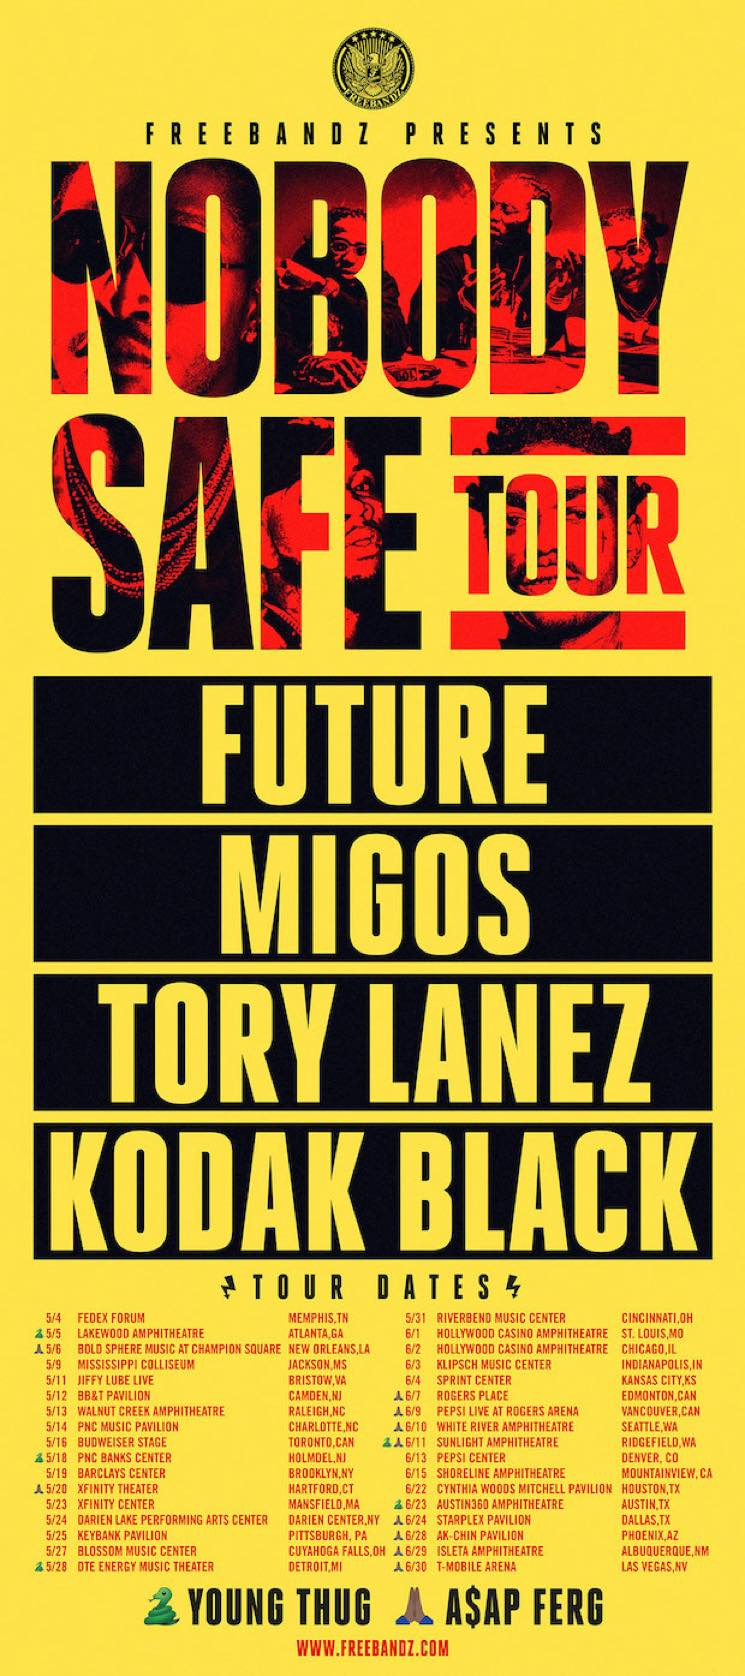 ​Future Gets Migos, Tory Lanez, Kodak Black, A$AP Ferg and Young Thug for 'Nobody Safe Tour' (And He's Dropping a New Album This Week)